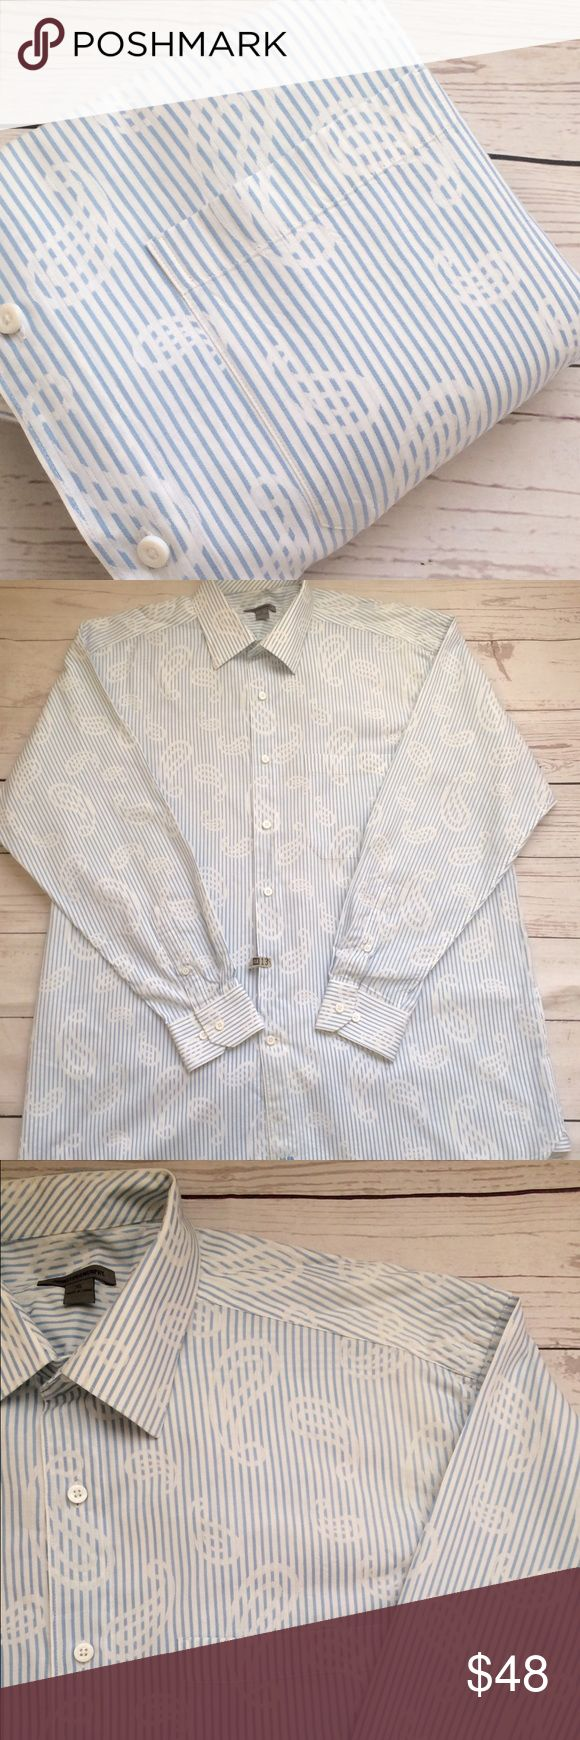 """•Johnston & Murphy• men's  long sleeve button front 100% cotton oxford shirt. Size XL per tag:runs small, see measurement below•J&M insignia near hem• slightly textured• small spot near hem as pictured, otherwise no flaws•  Chest: 26"""" Length: 34"""" Sleeve: 36"""" Shoulder: 22.5"""" Johnston & Murphy Shirts Casual Button Down Shirts"""